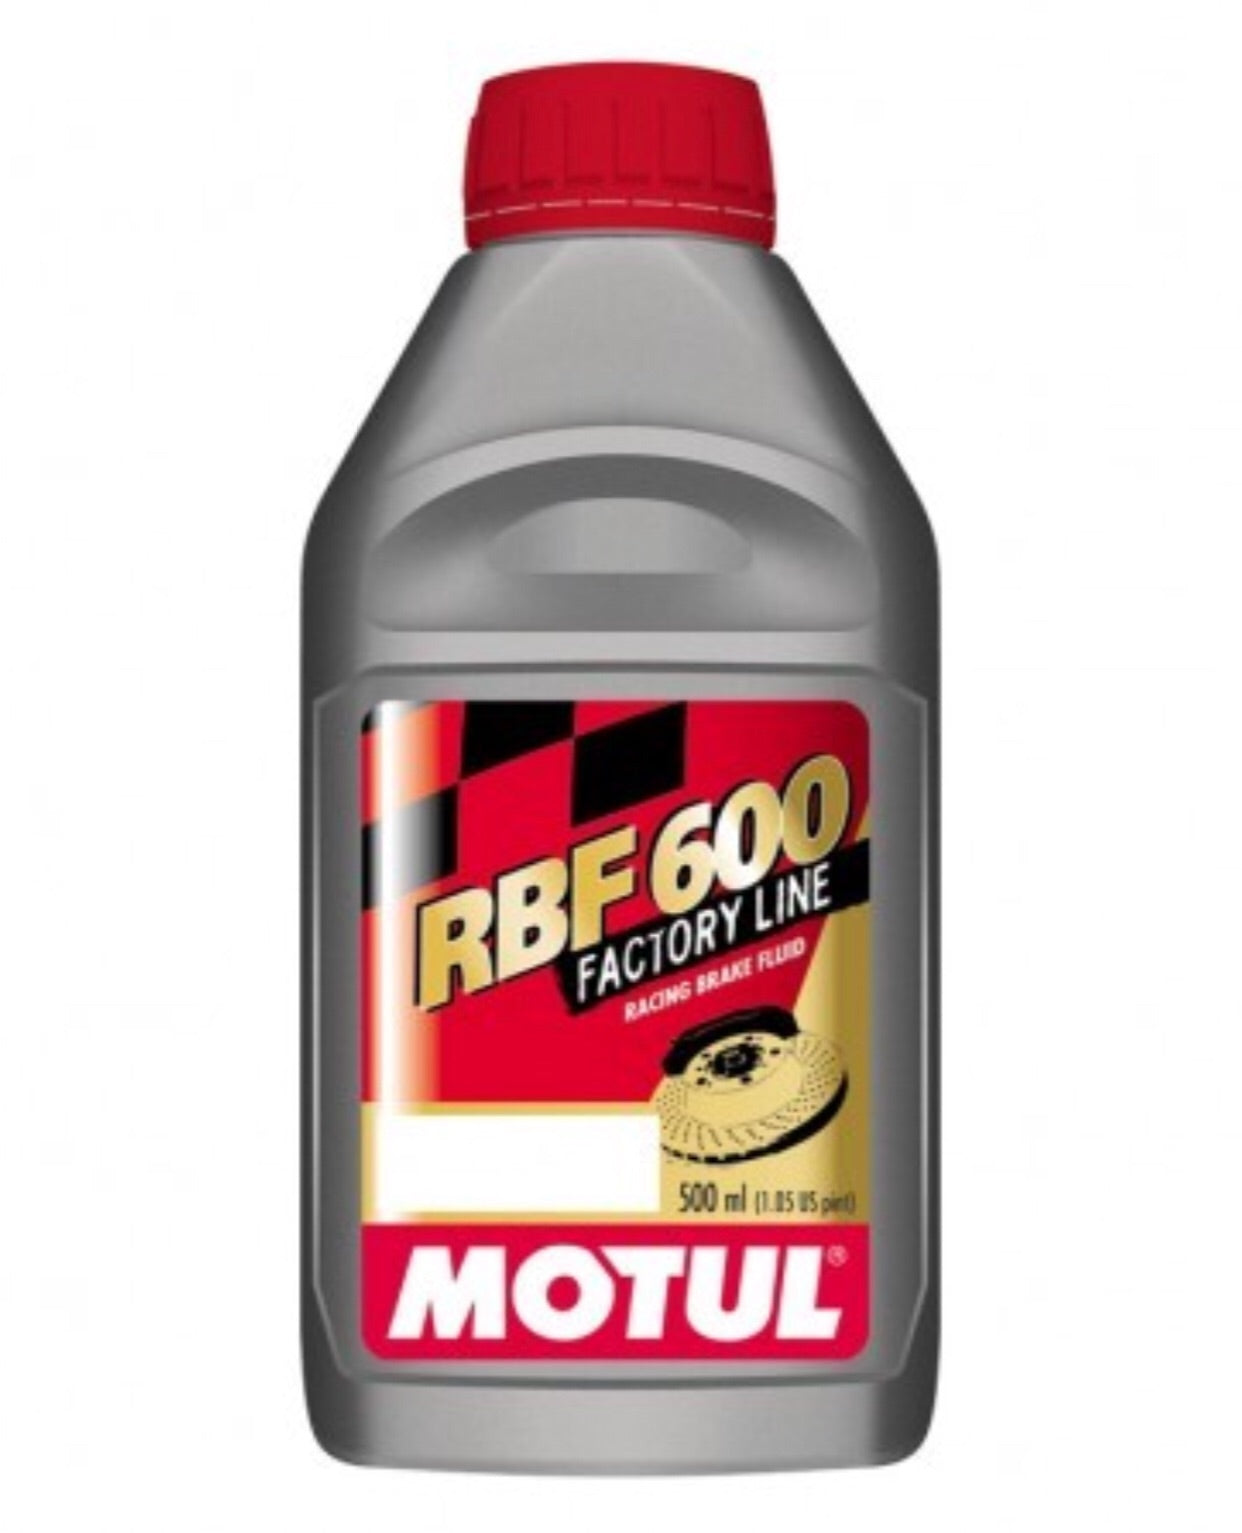 Motul RBF600 Factory Line Brake Fluid - The Brake King